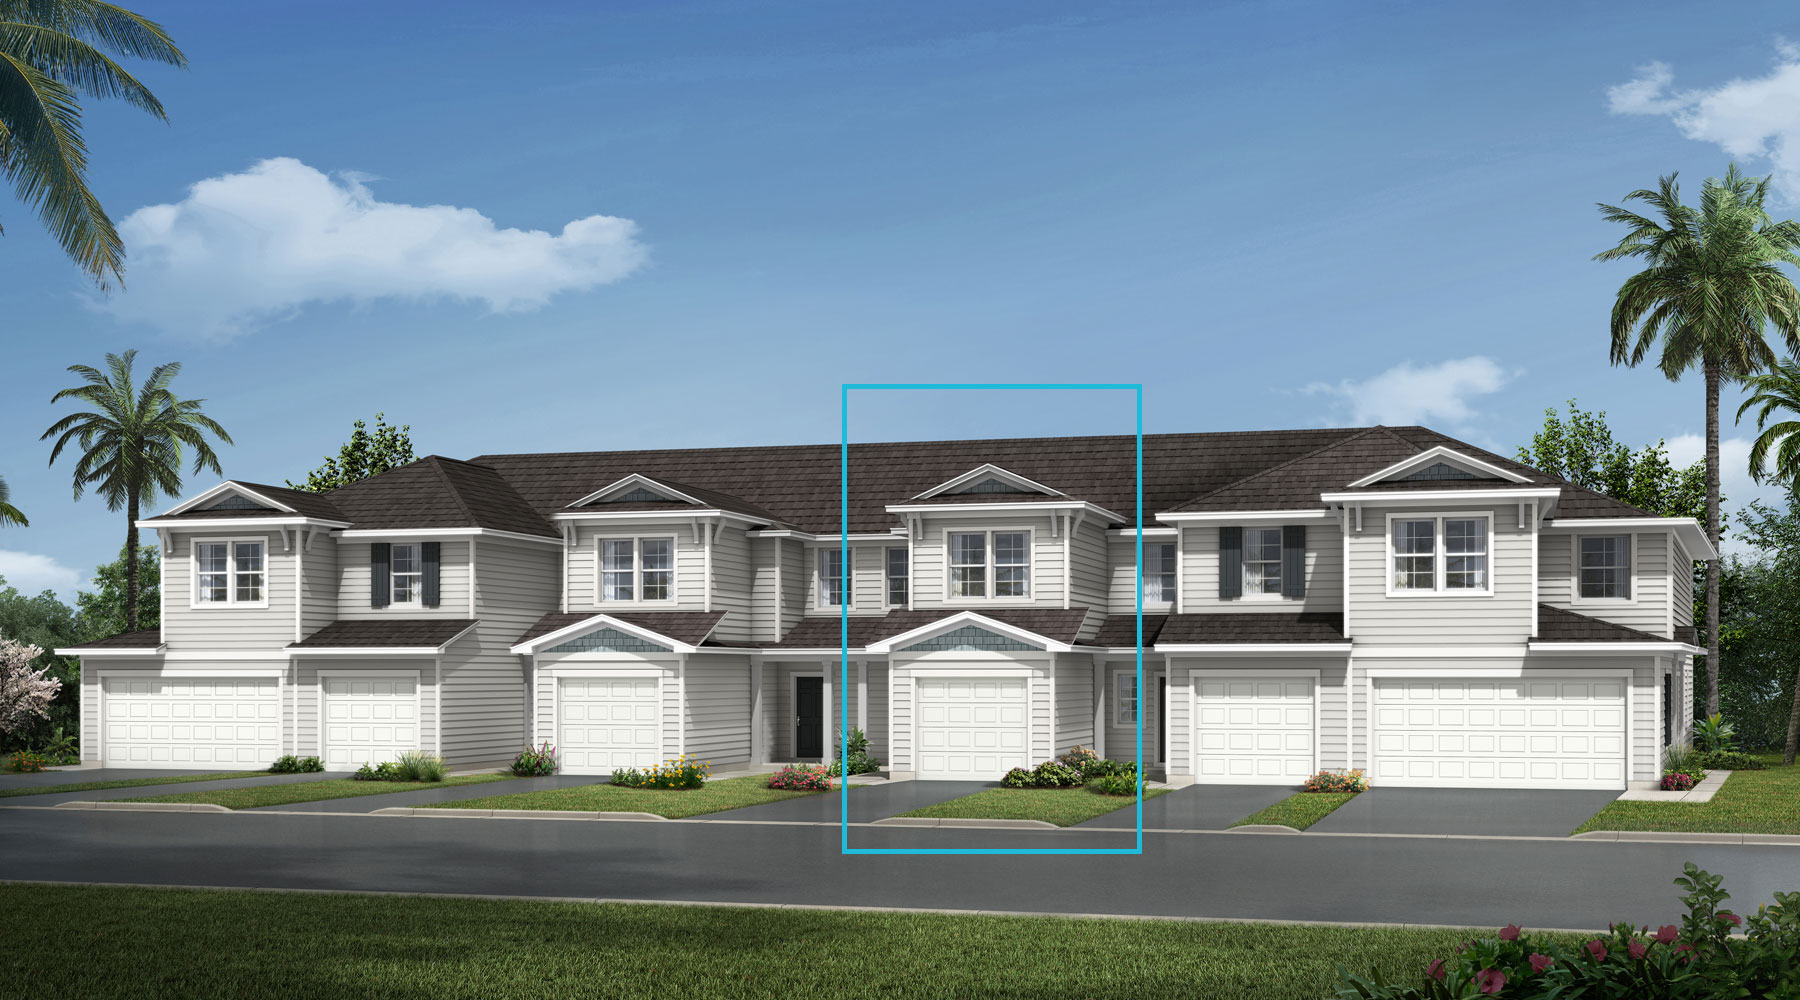 Cove Plan TownHomes at Wells Creek in Jacksonville Florida by Mattamy Homes